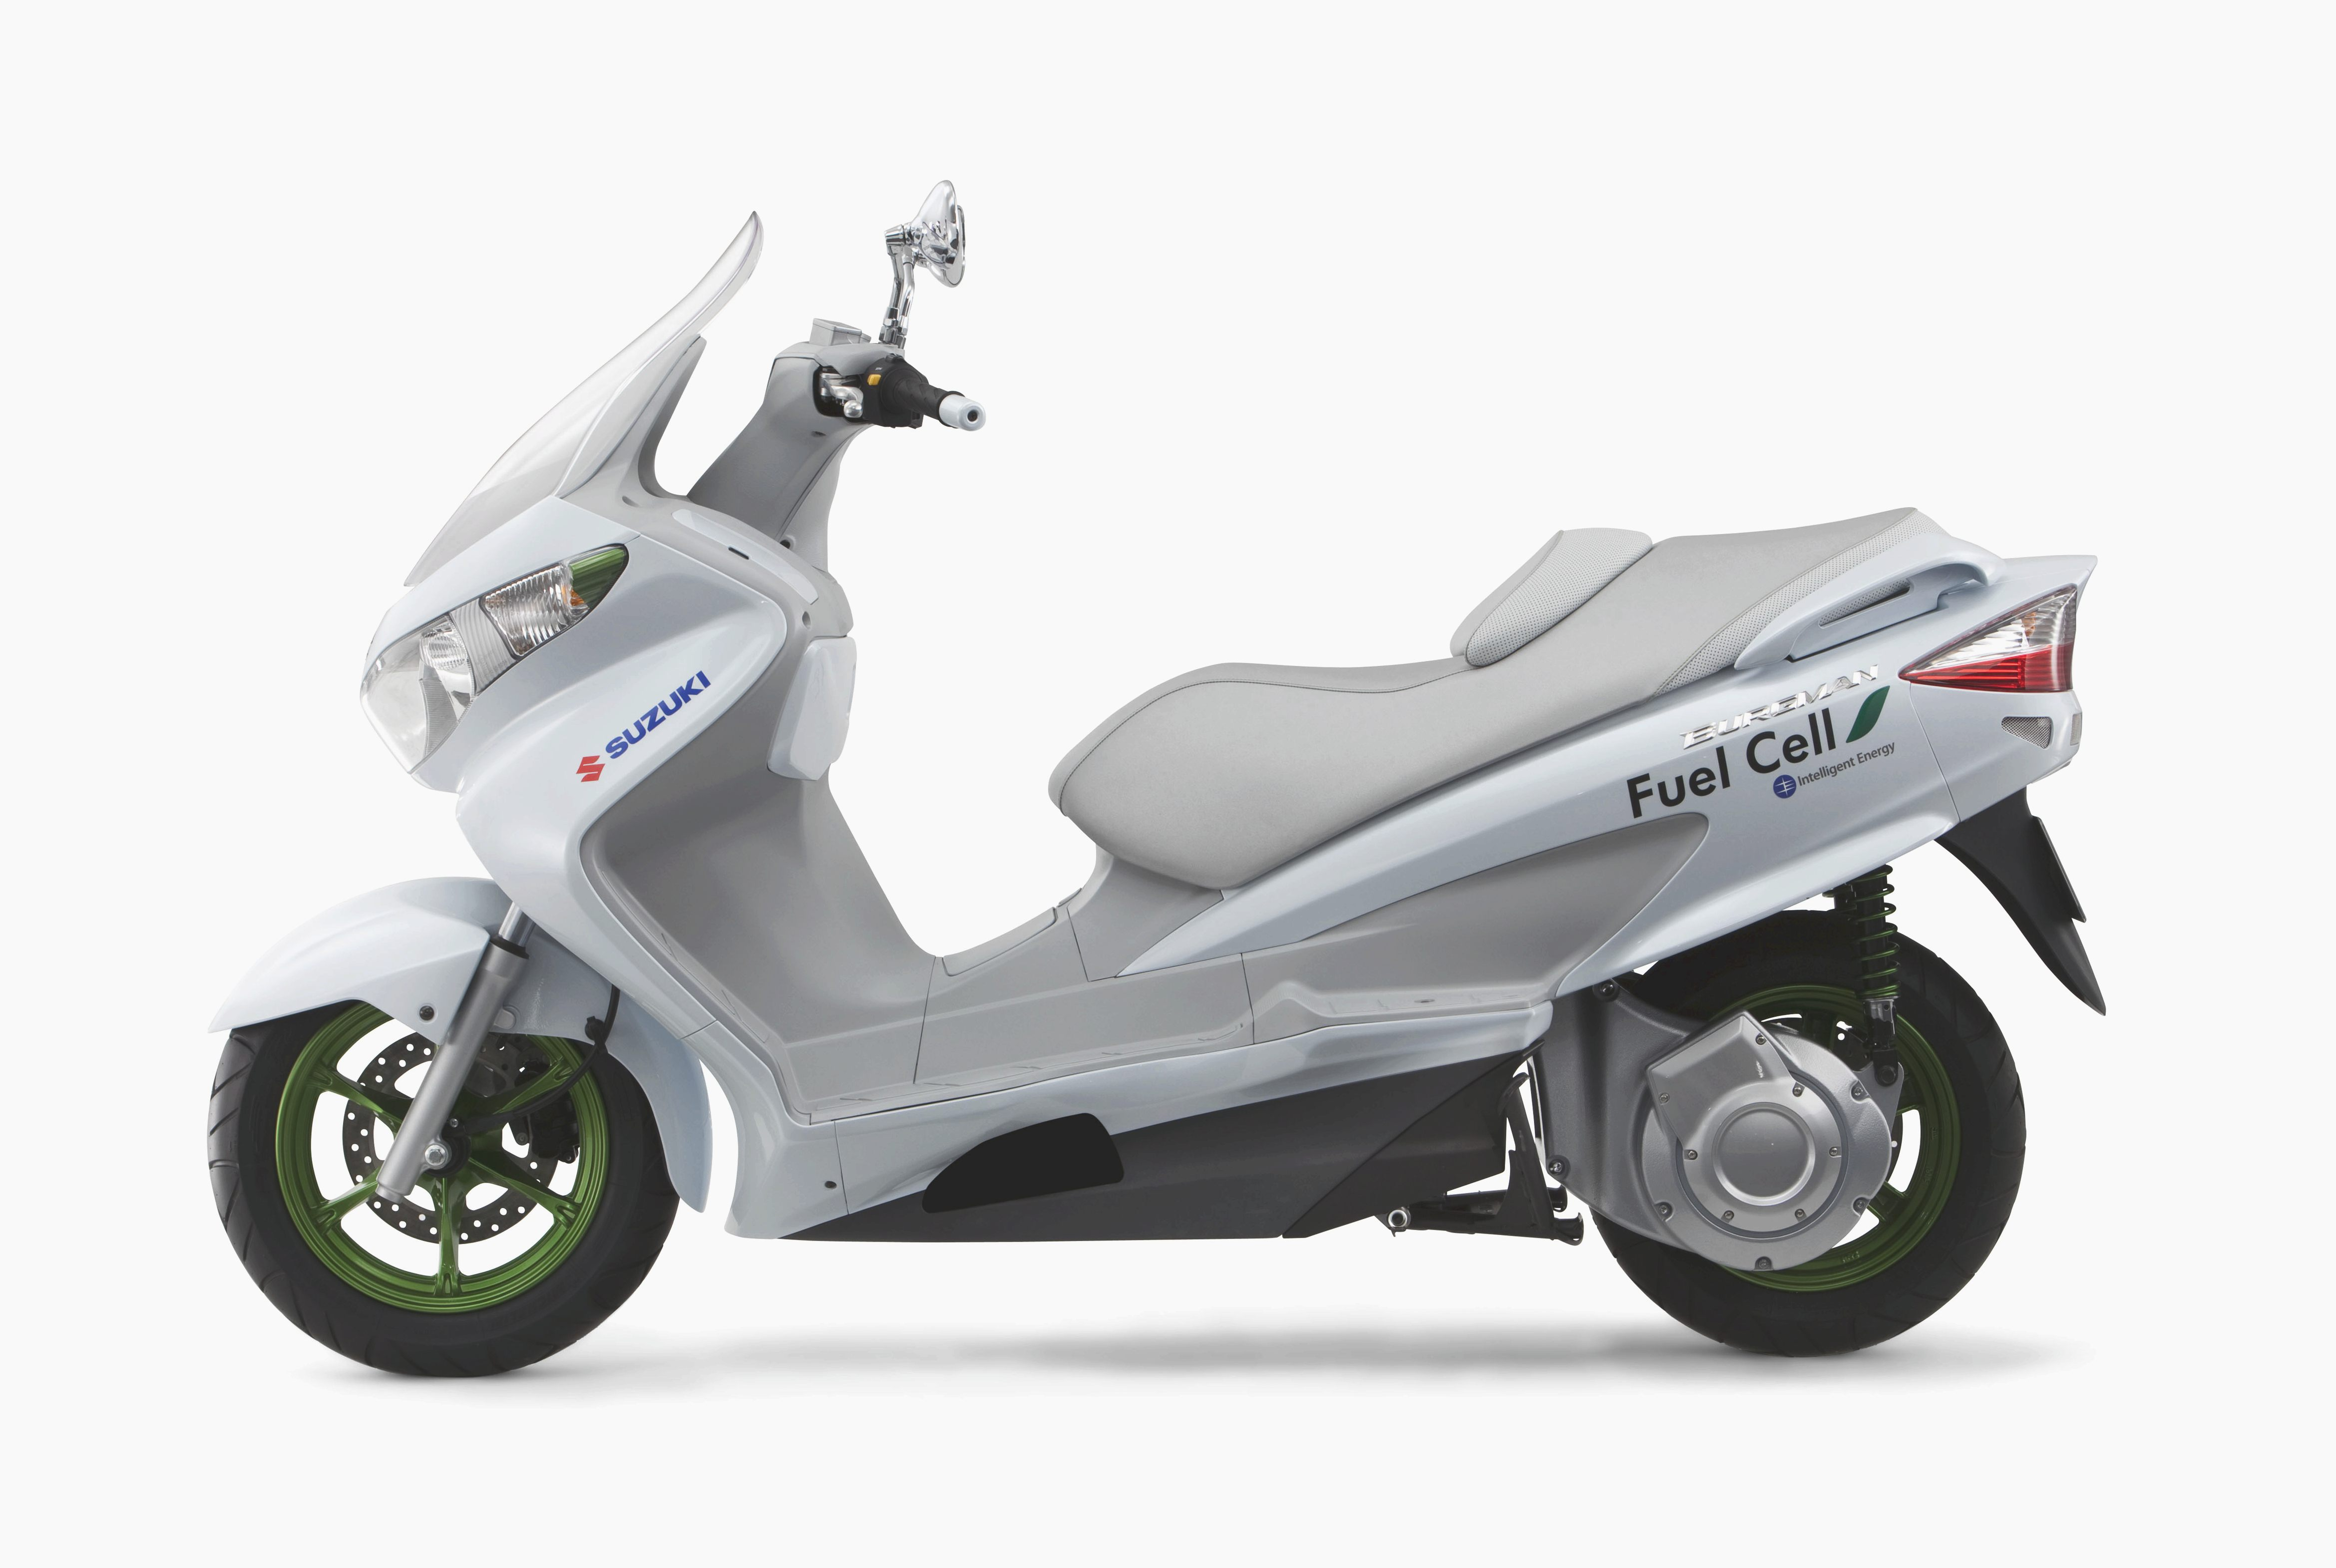 Suzuki Burgman Fuel Cell #6